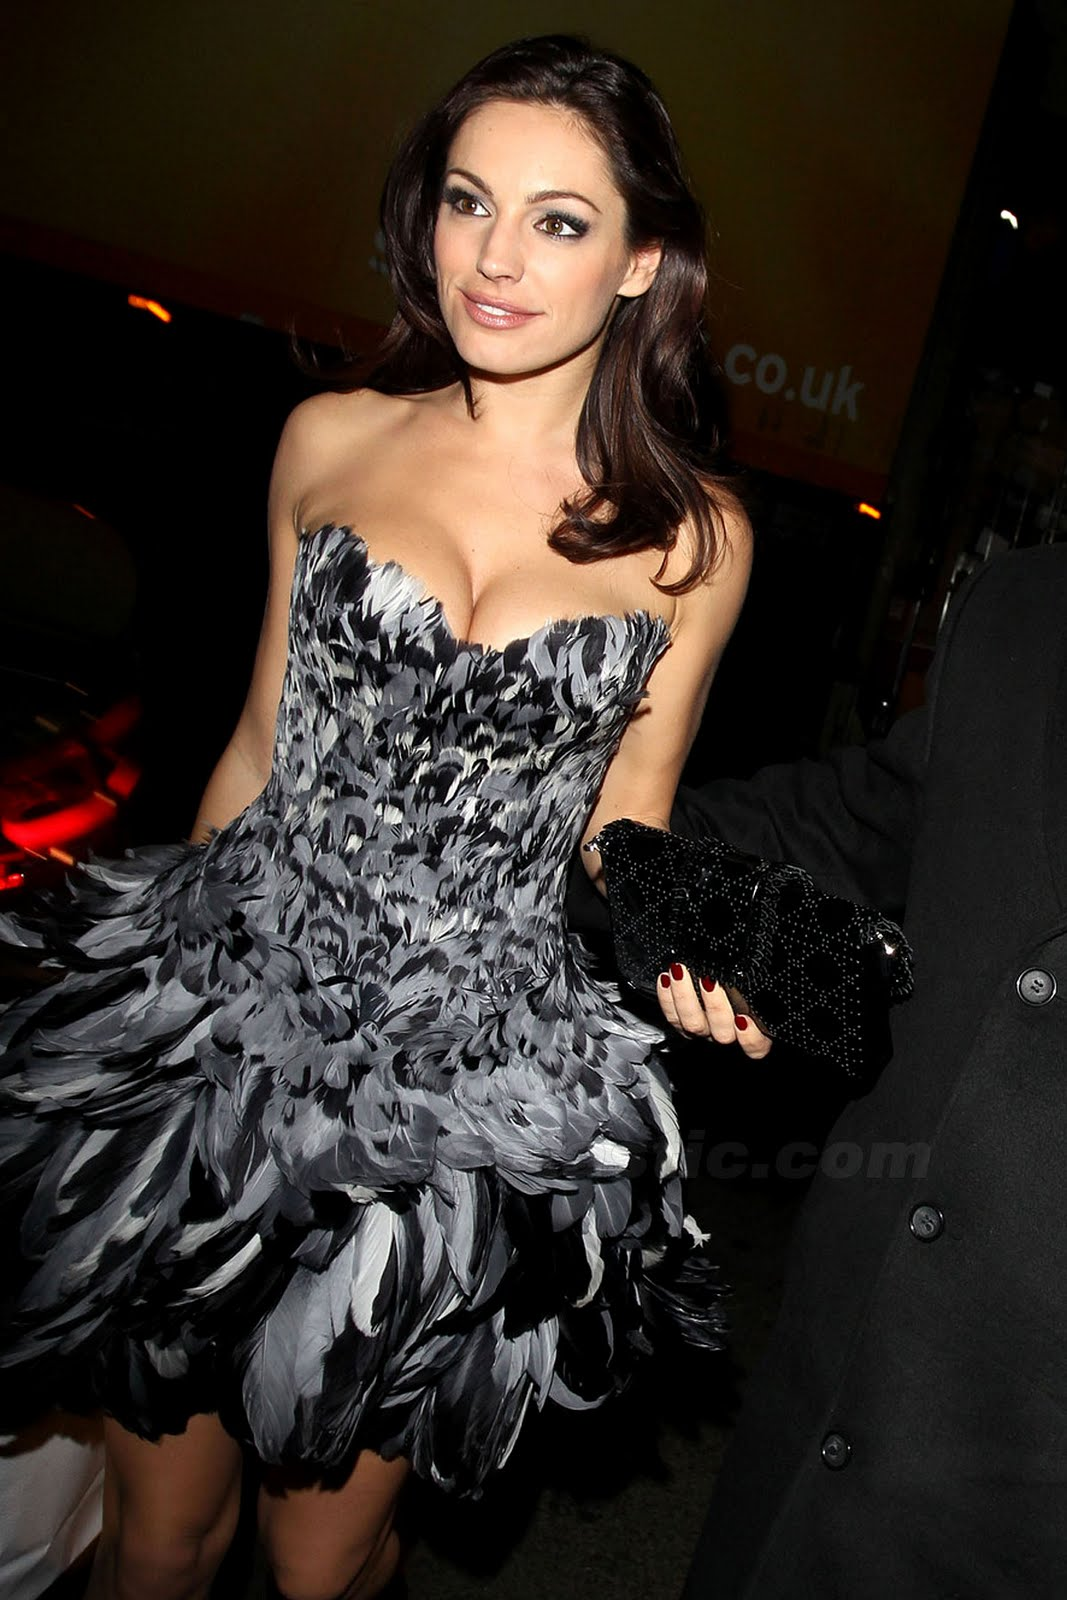 http://1.bp.blogspot.com/_xouULh7tF44/TPqtp6eppfI/AAAAAAAARWE/x213XfhxThE/s1600/kelly-brook-feather-dress-03.jpg